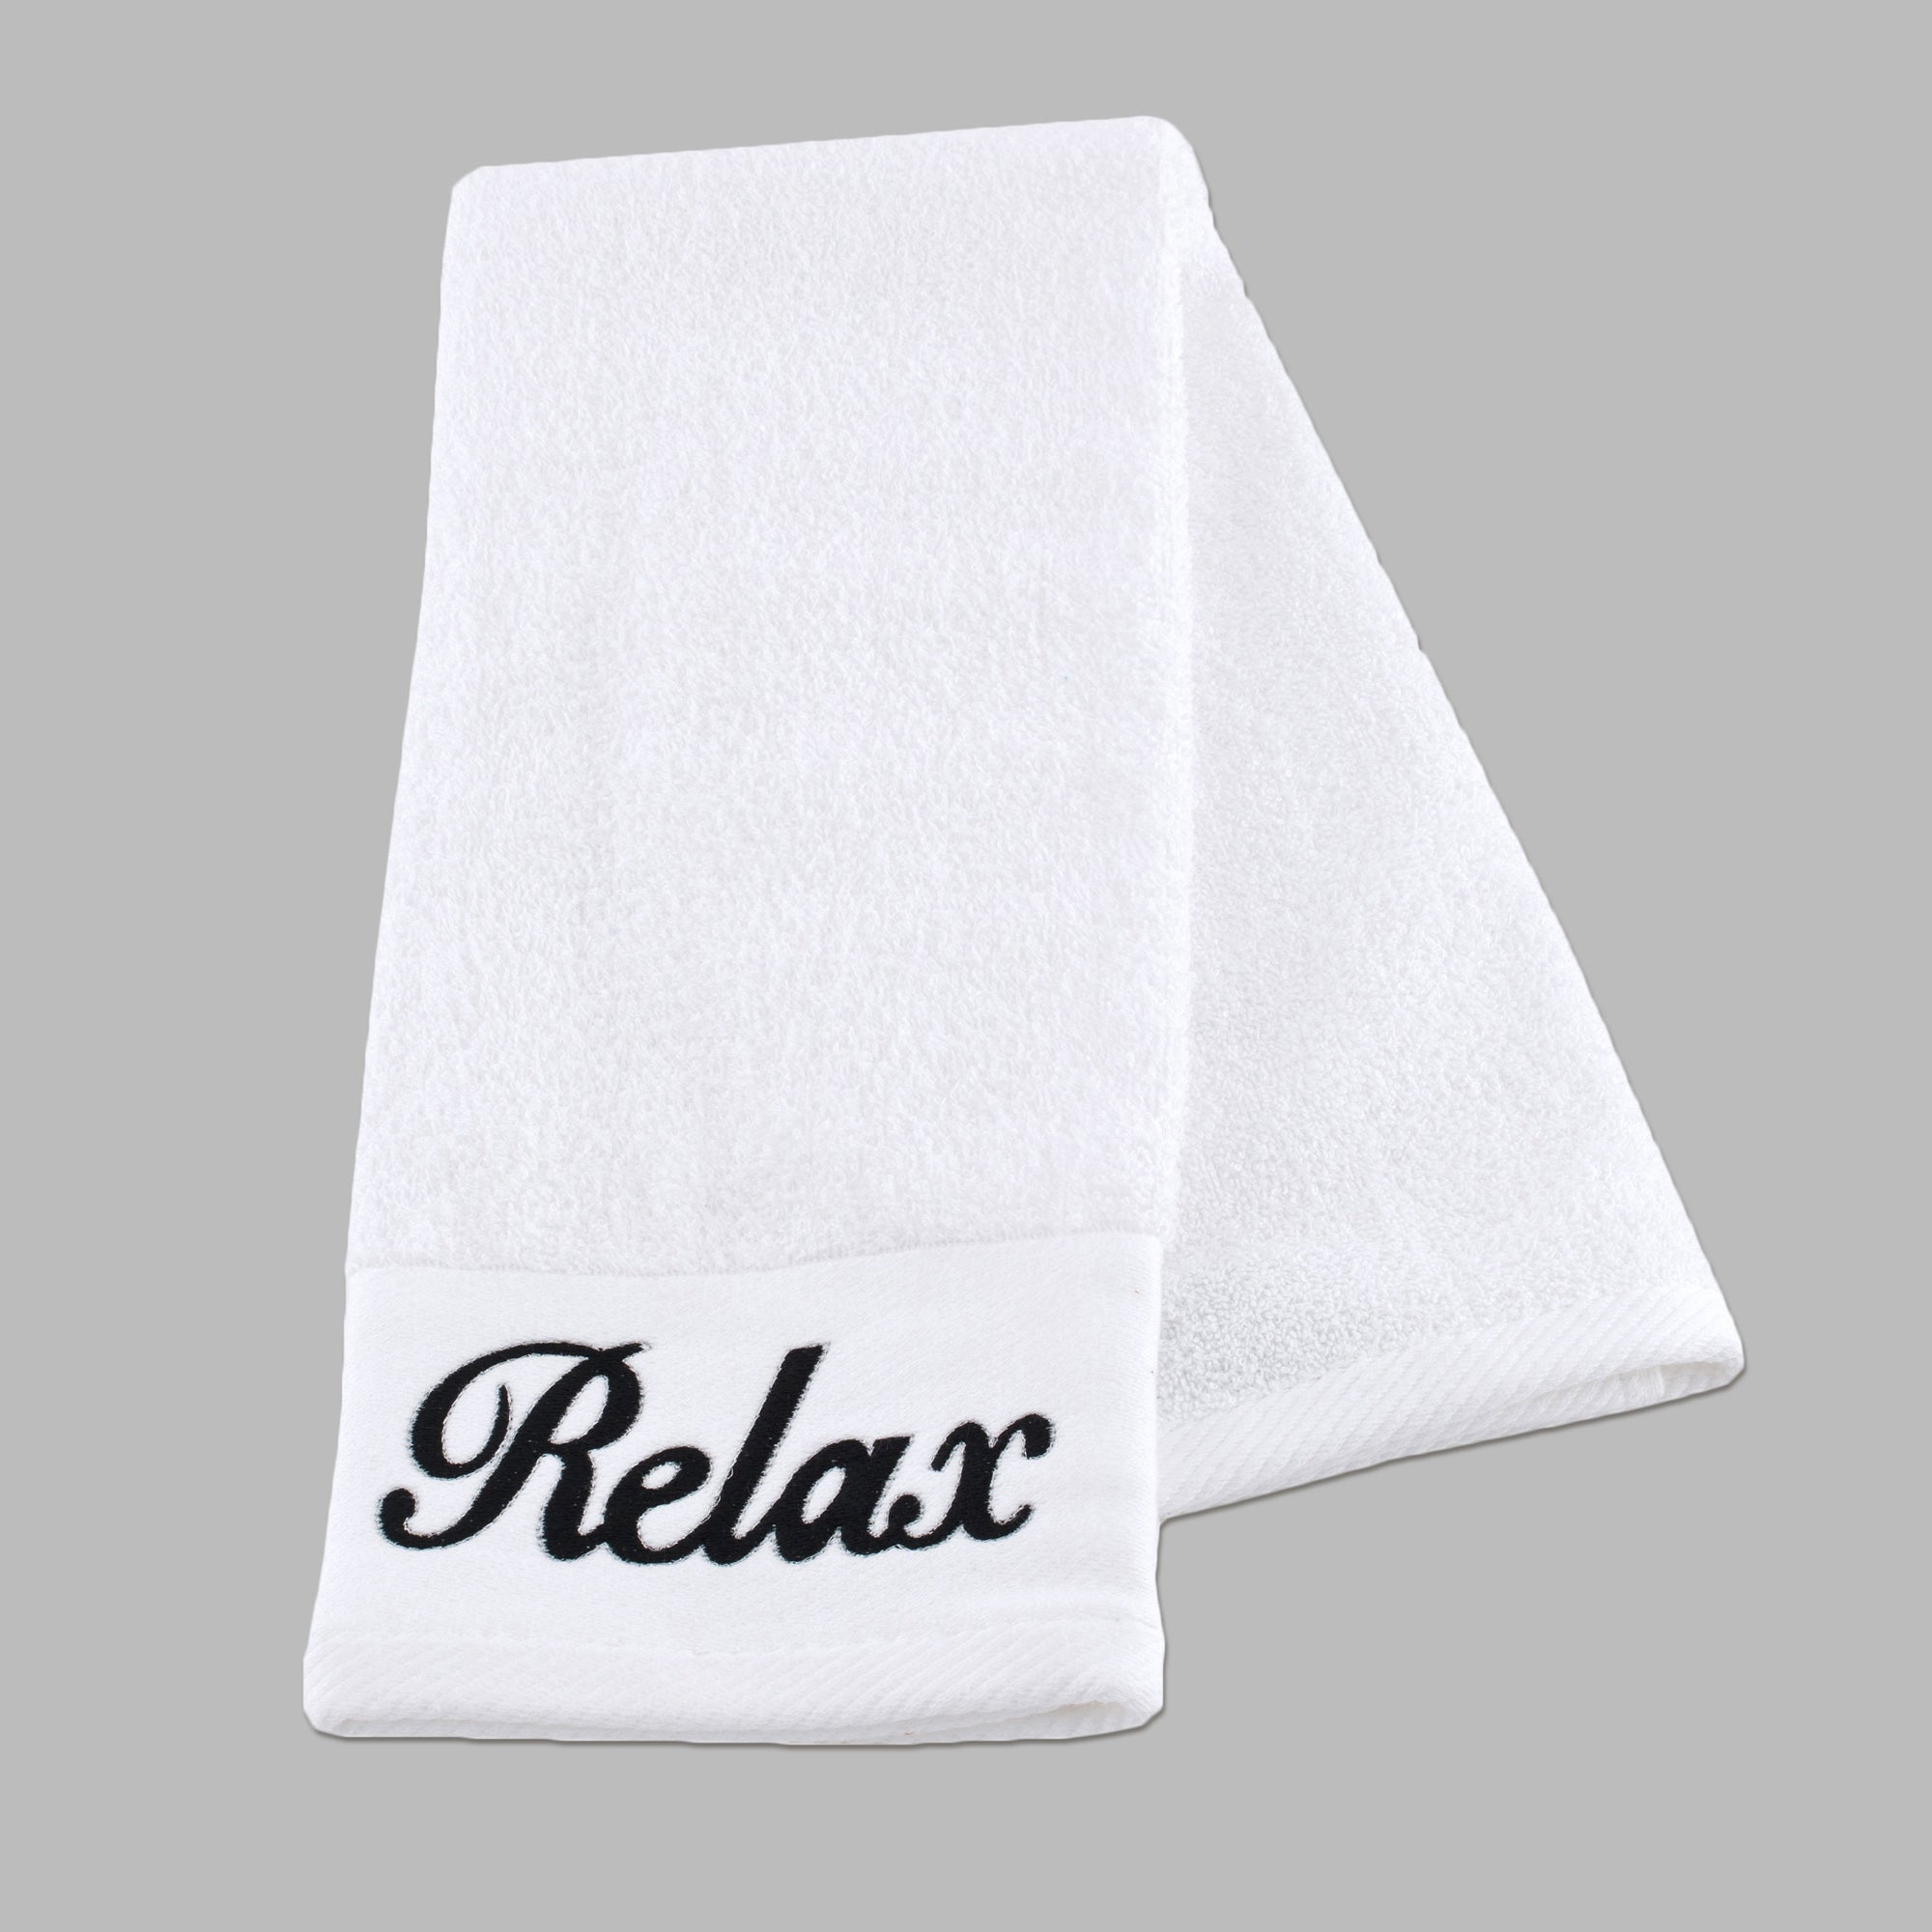 Jewel Relax Hand Towel